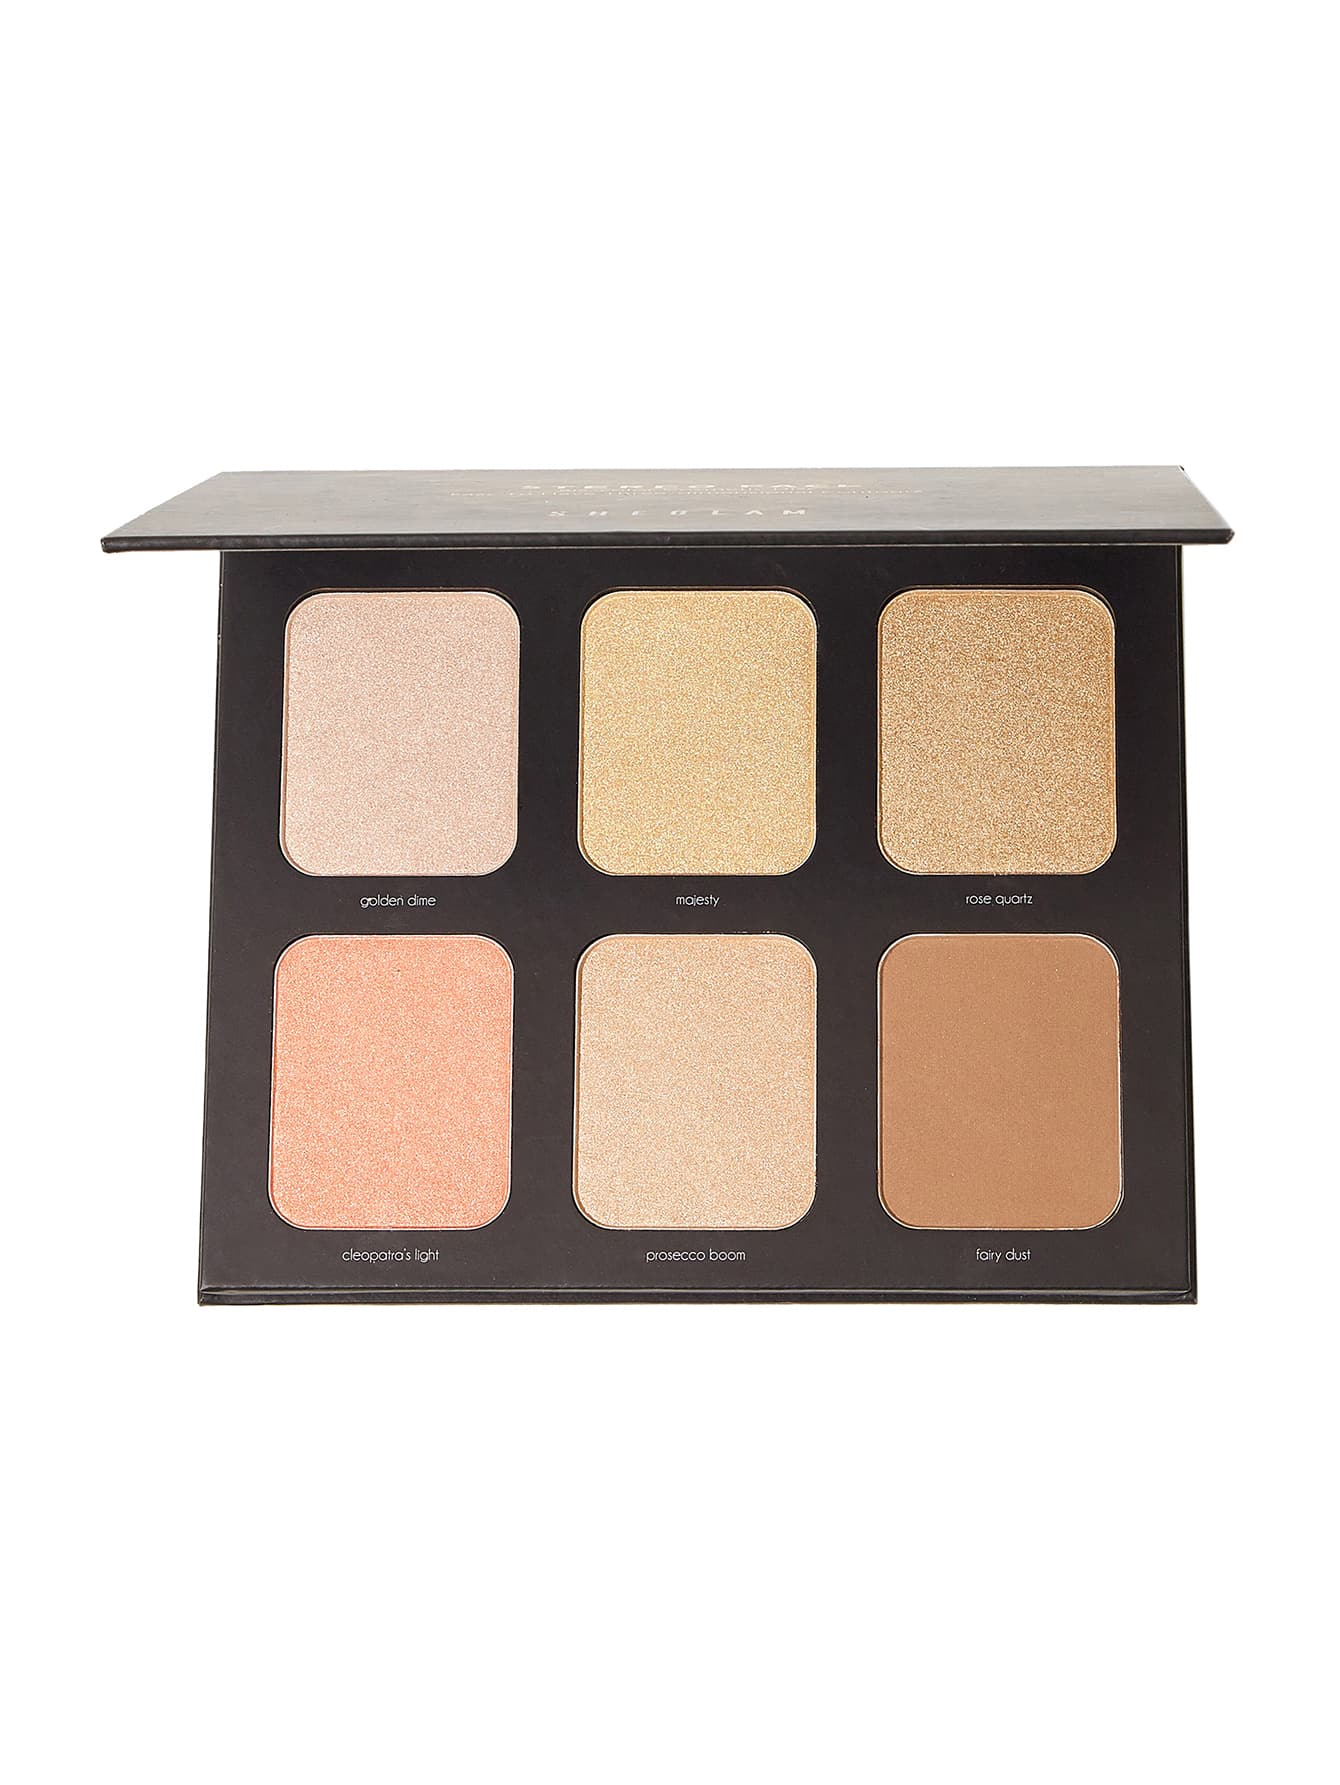 VENUS SIX-COLOR REPAIR Highlighter Palette-501 MOONLIGHT